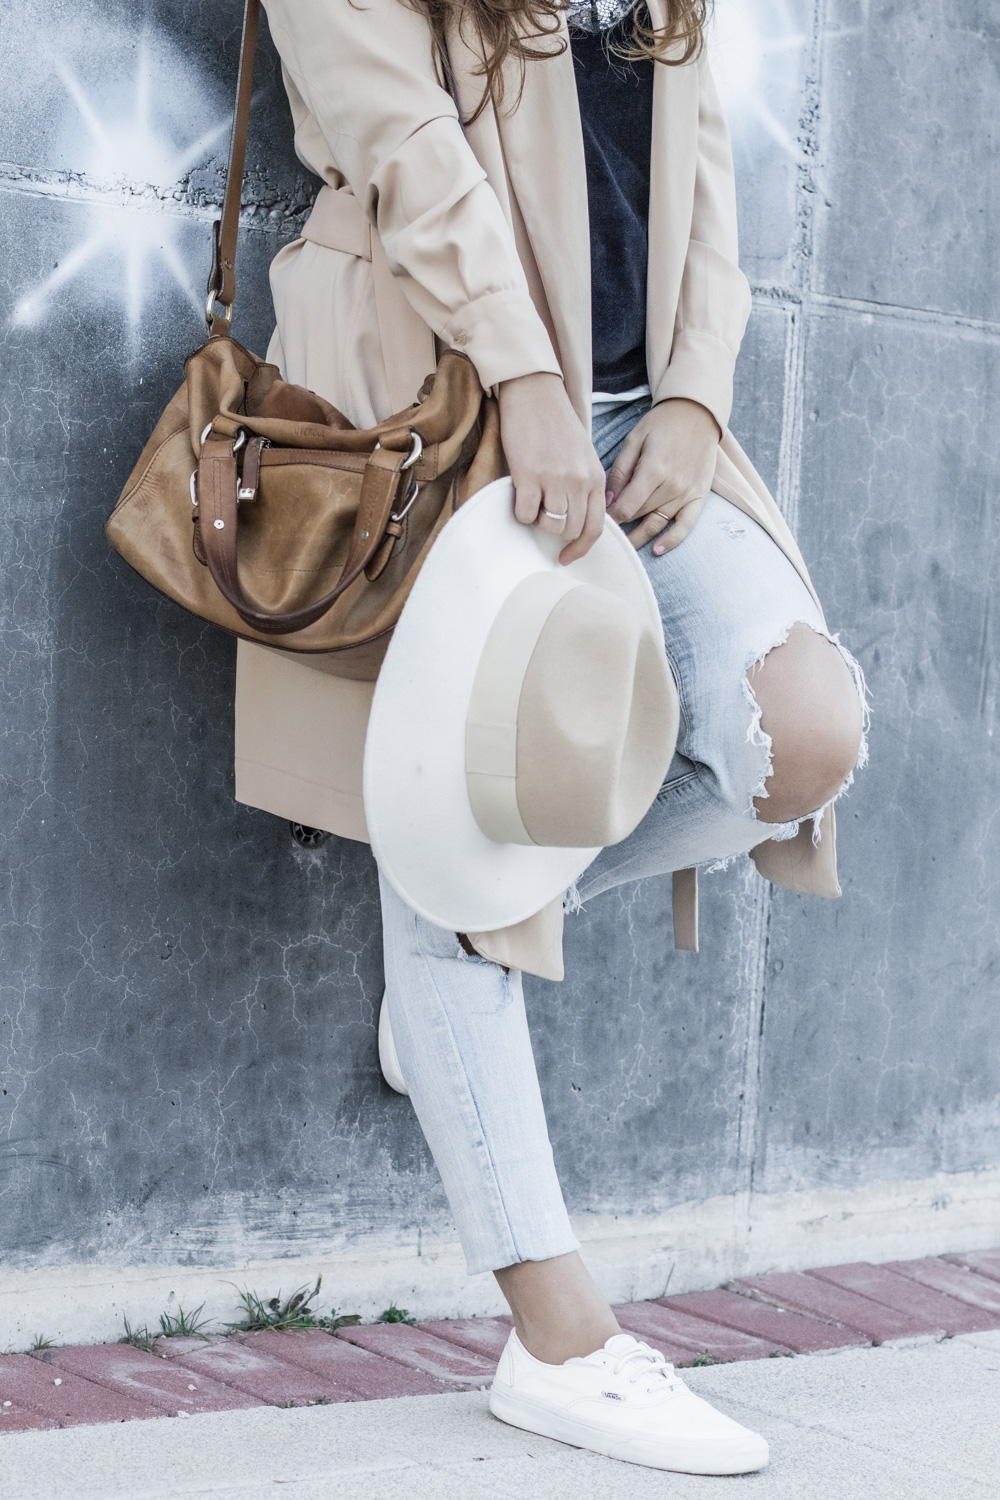 loreto_made_in_style_top_lencero_denim_trench_sombrero_blanco-12